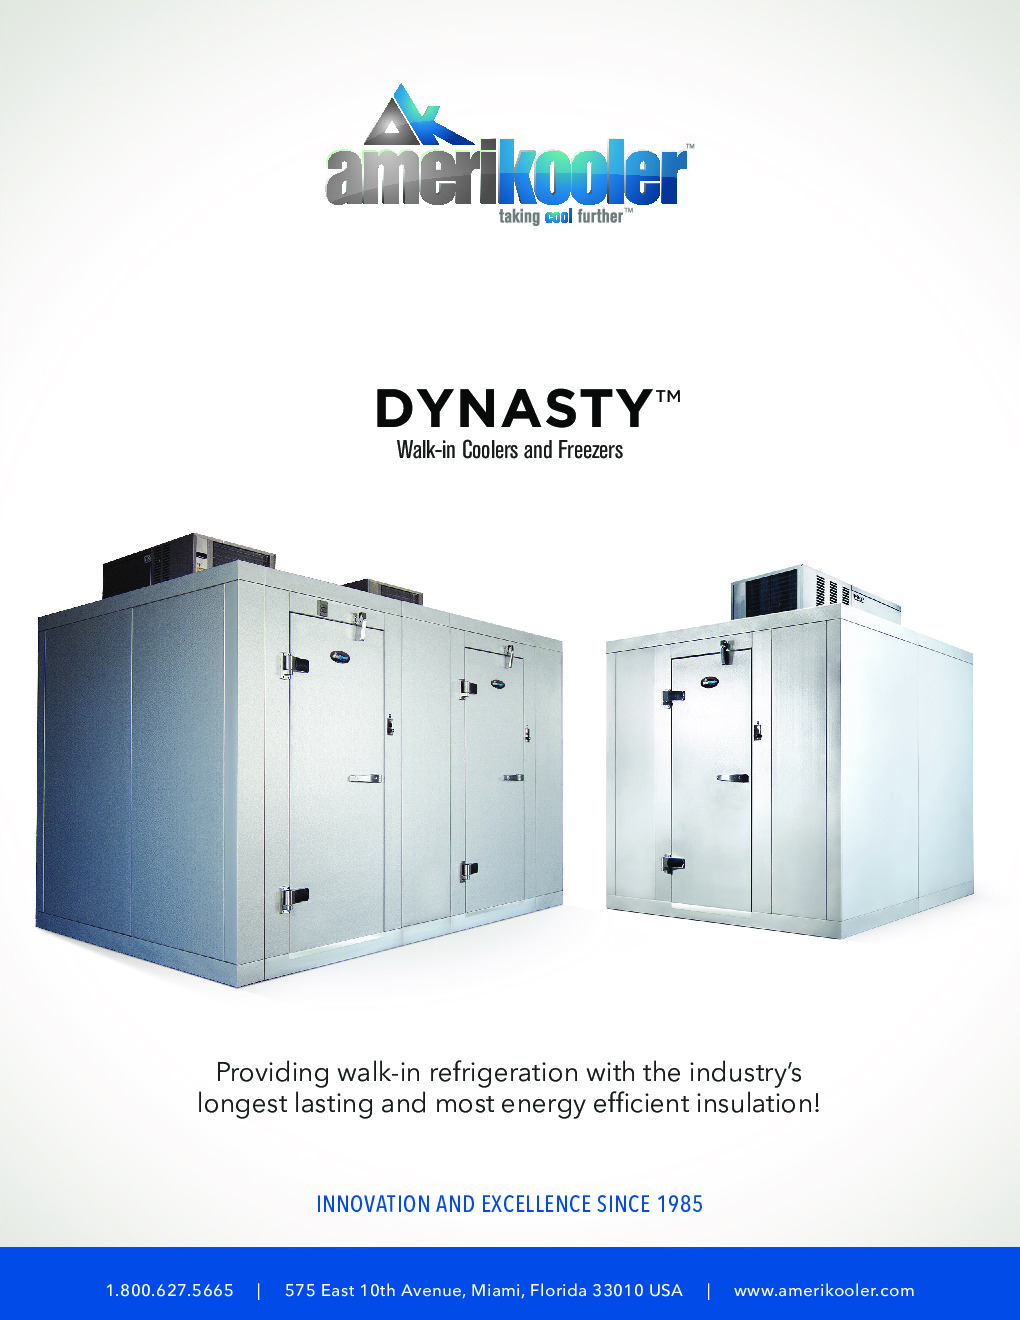 AmeriKooler DW091477F-5/9-RM 9' X 14' Walk-In Cooler, 9' L Cooler with Floor and 5' L Freezer, Remote